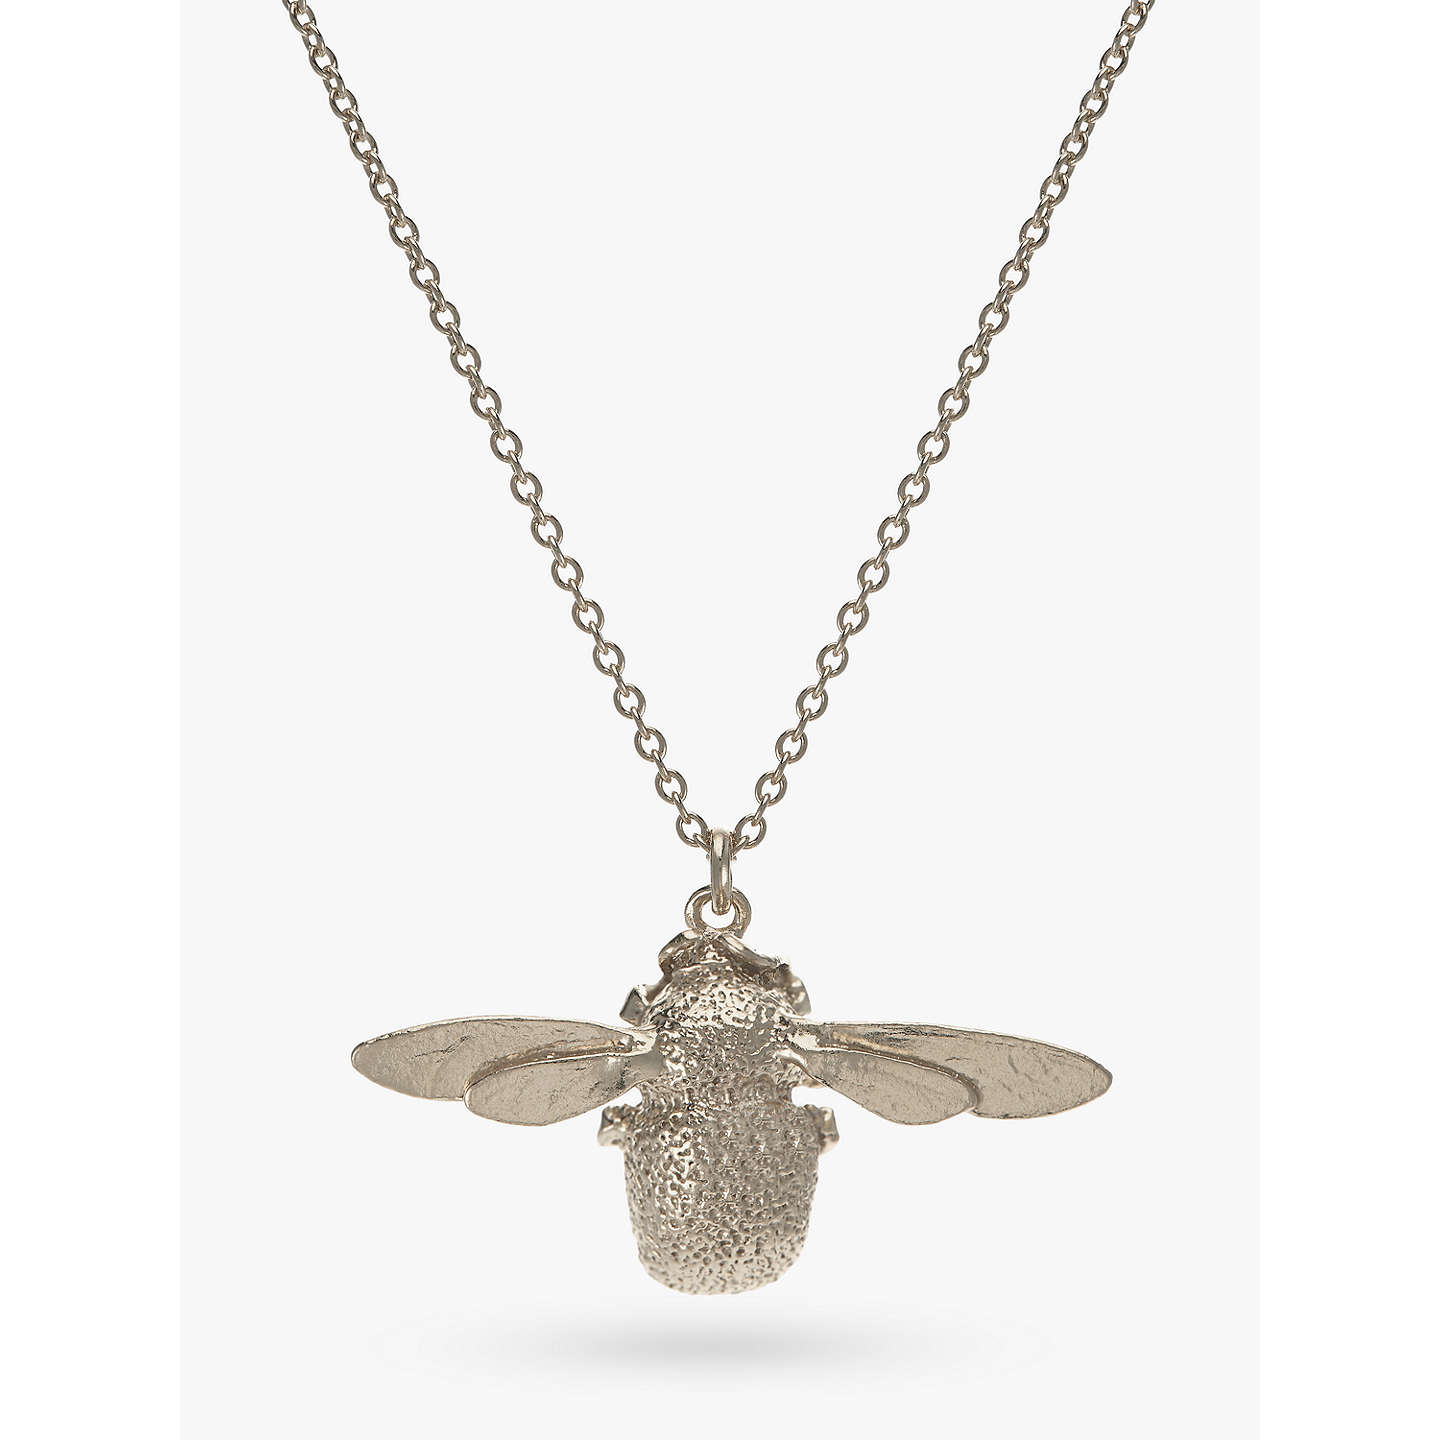 Alex monroe sterling silver bumble bee pendant necklace silver at buyalex monroe sterling silver bumble bee pendant necklace silver online at johnlewis mozeypictures Images